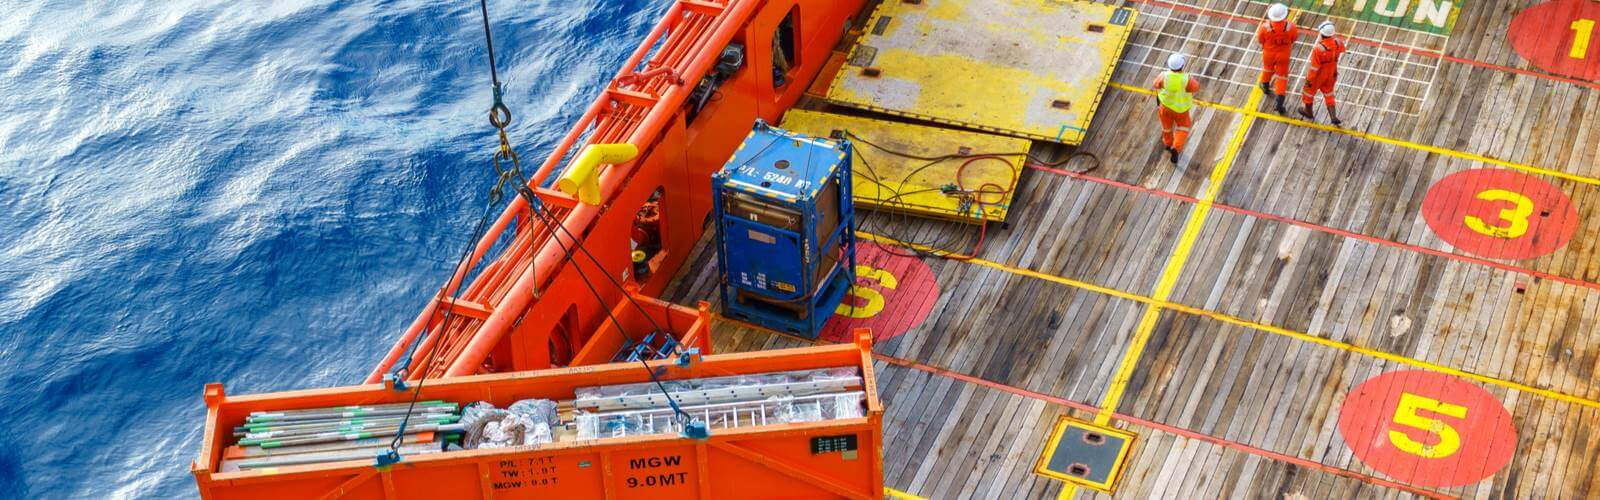 Maritime Offshore Injuries